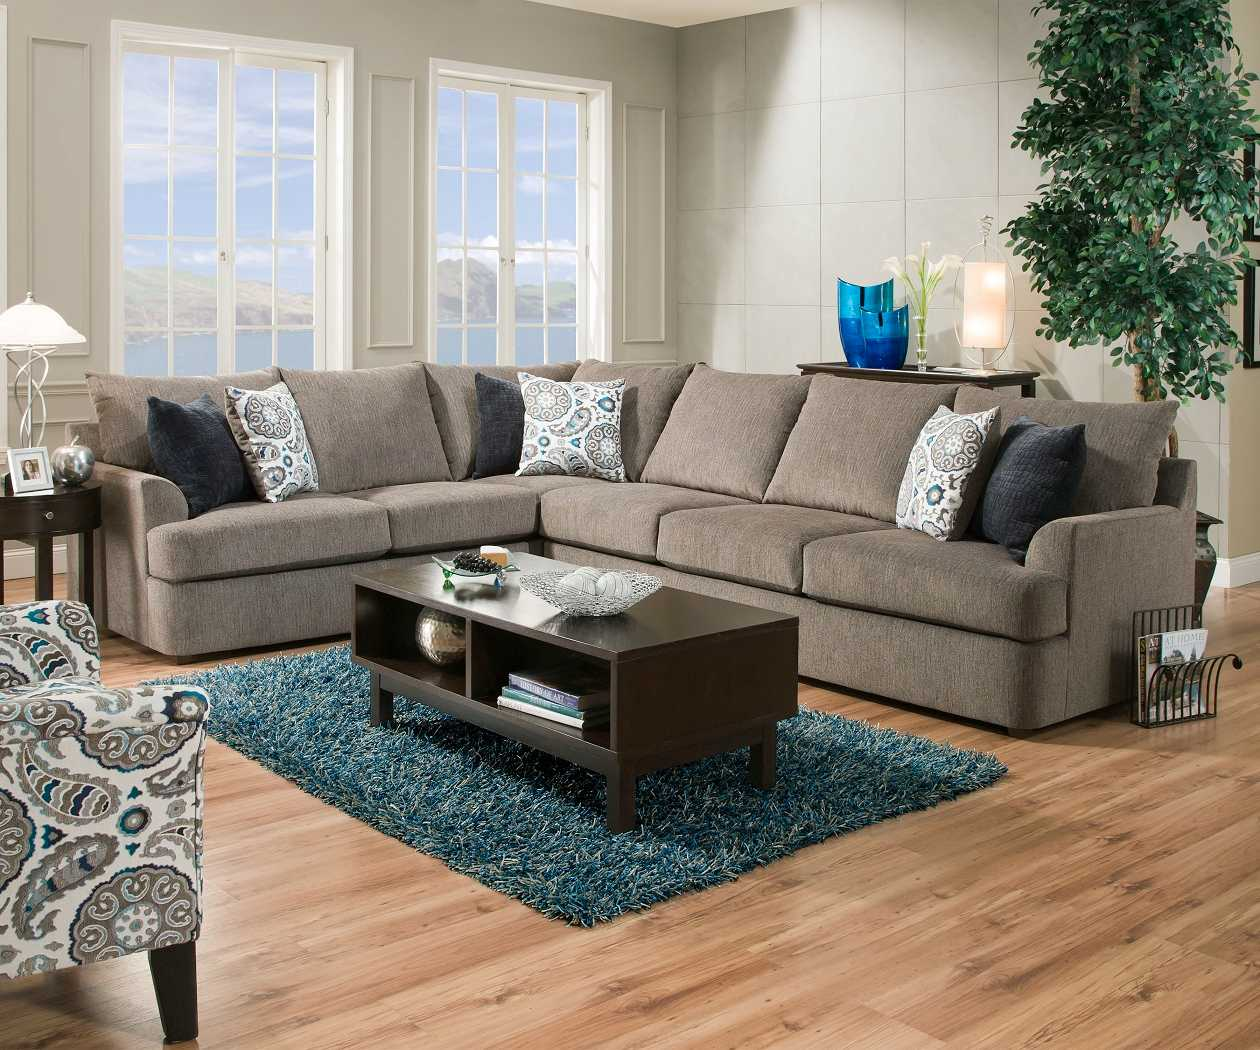 simmons small sectional sofa house of fraser linea leather reclining reviews upholstery apollo